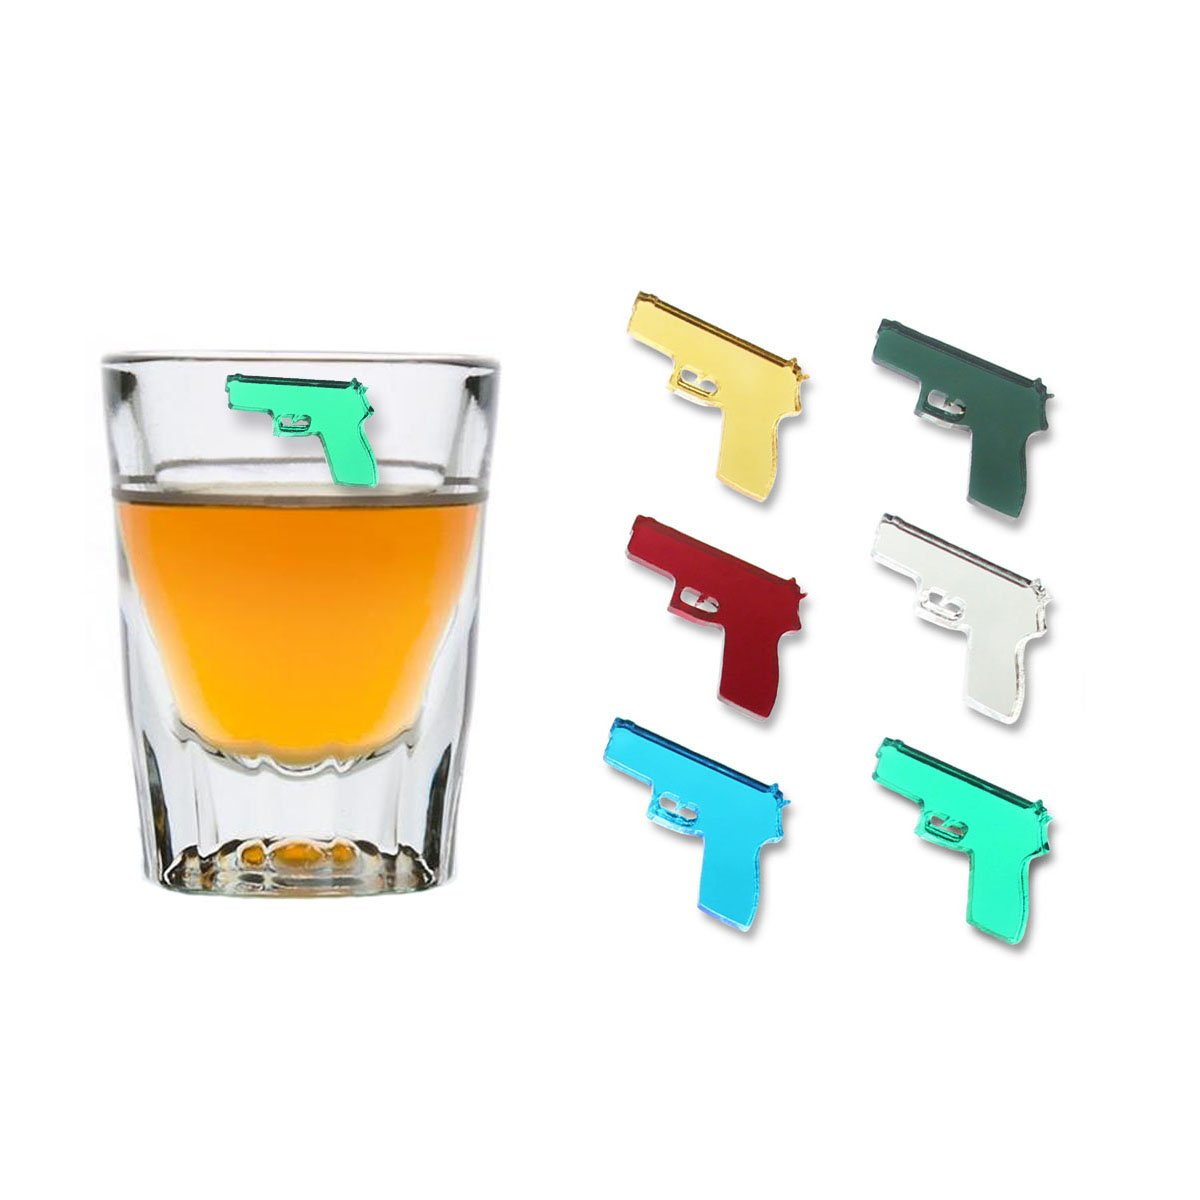 HANDGUNS Magnetic Wine Glass Charms (Set of 6) by Claim Your Glass - Premium Drink Markers for Wine, Champagne, Beer, Cocktail Glasses - Includes Storage Case + Spare Magnet by Claim Your Glass (Image #4)